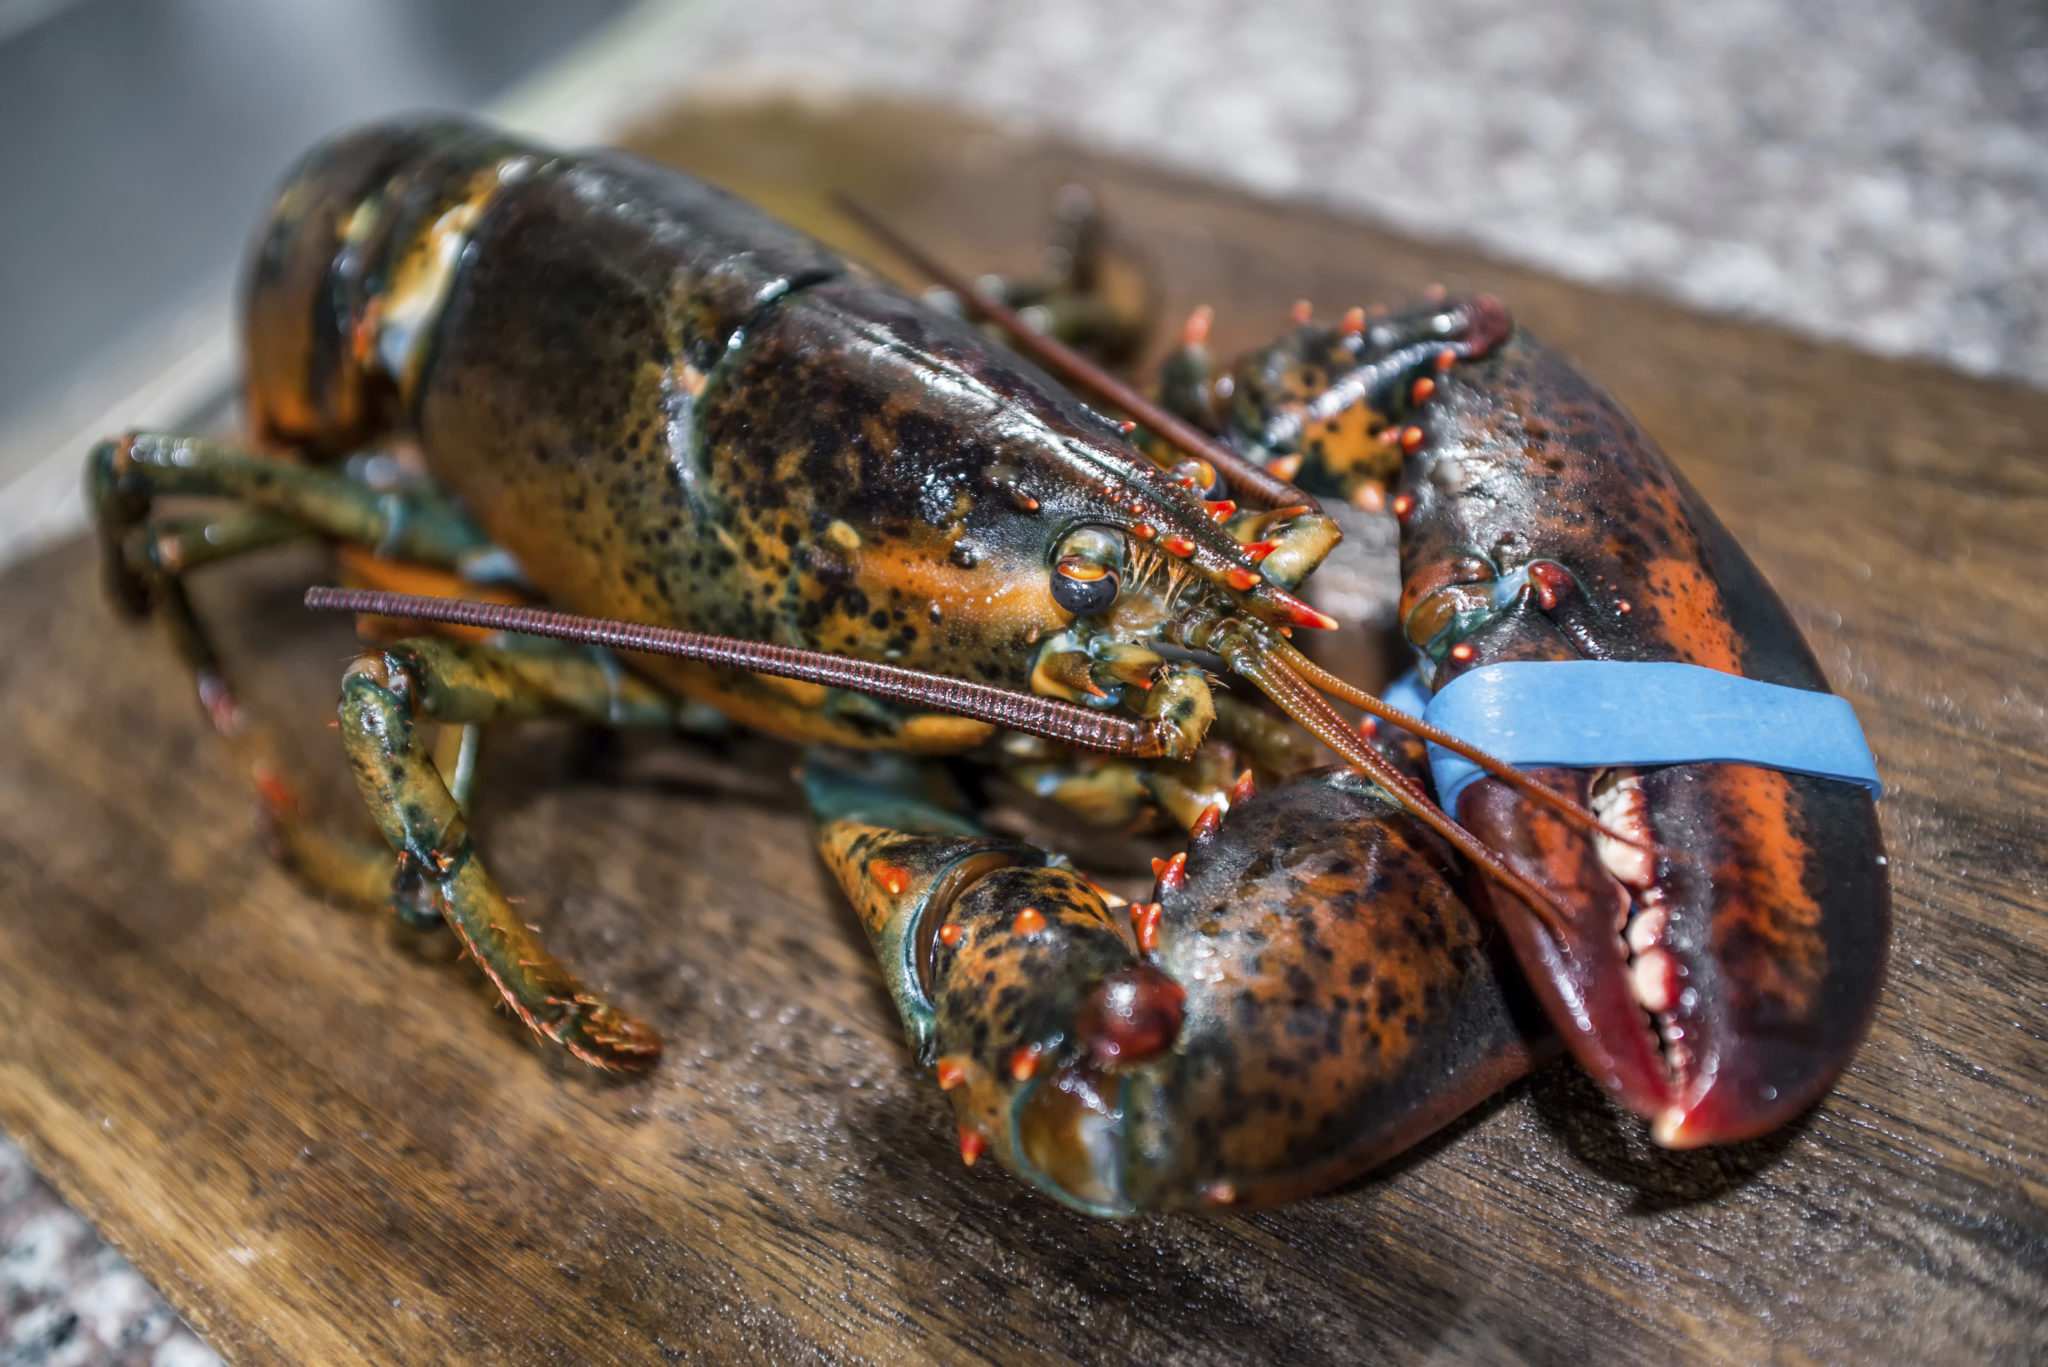 Plastic found inside lobster being prepared for meal in Edinburgh